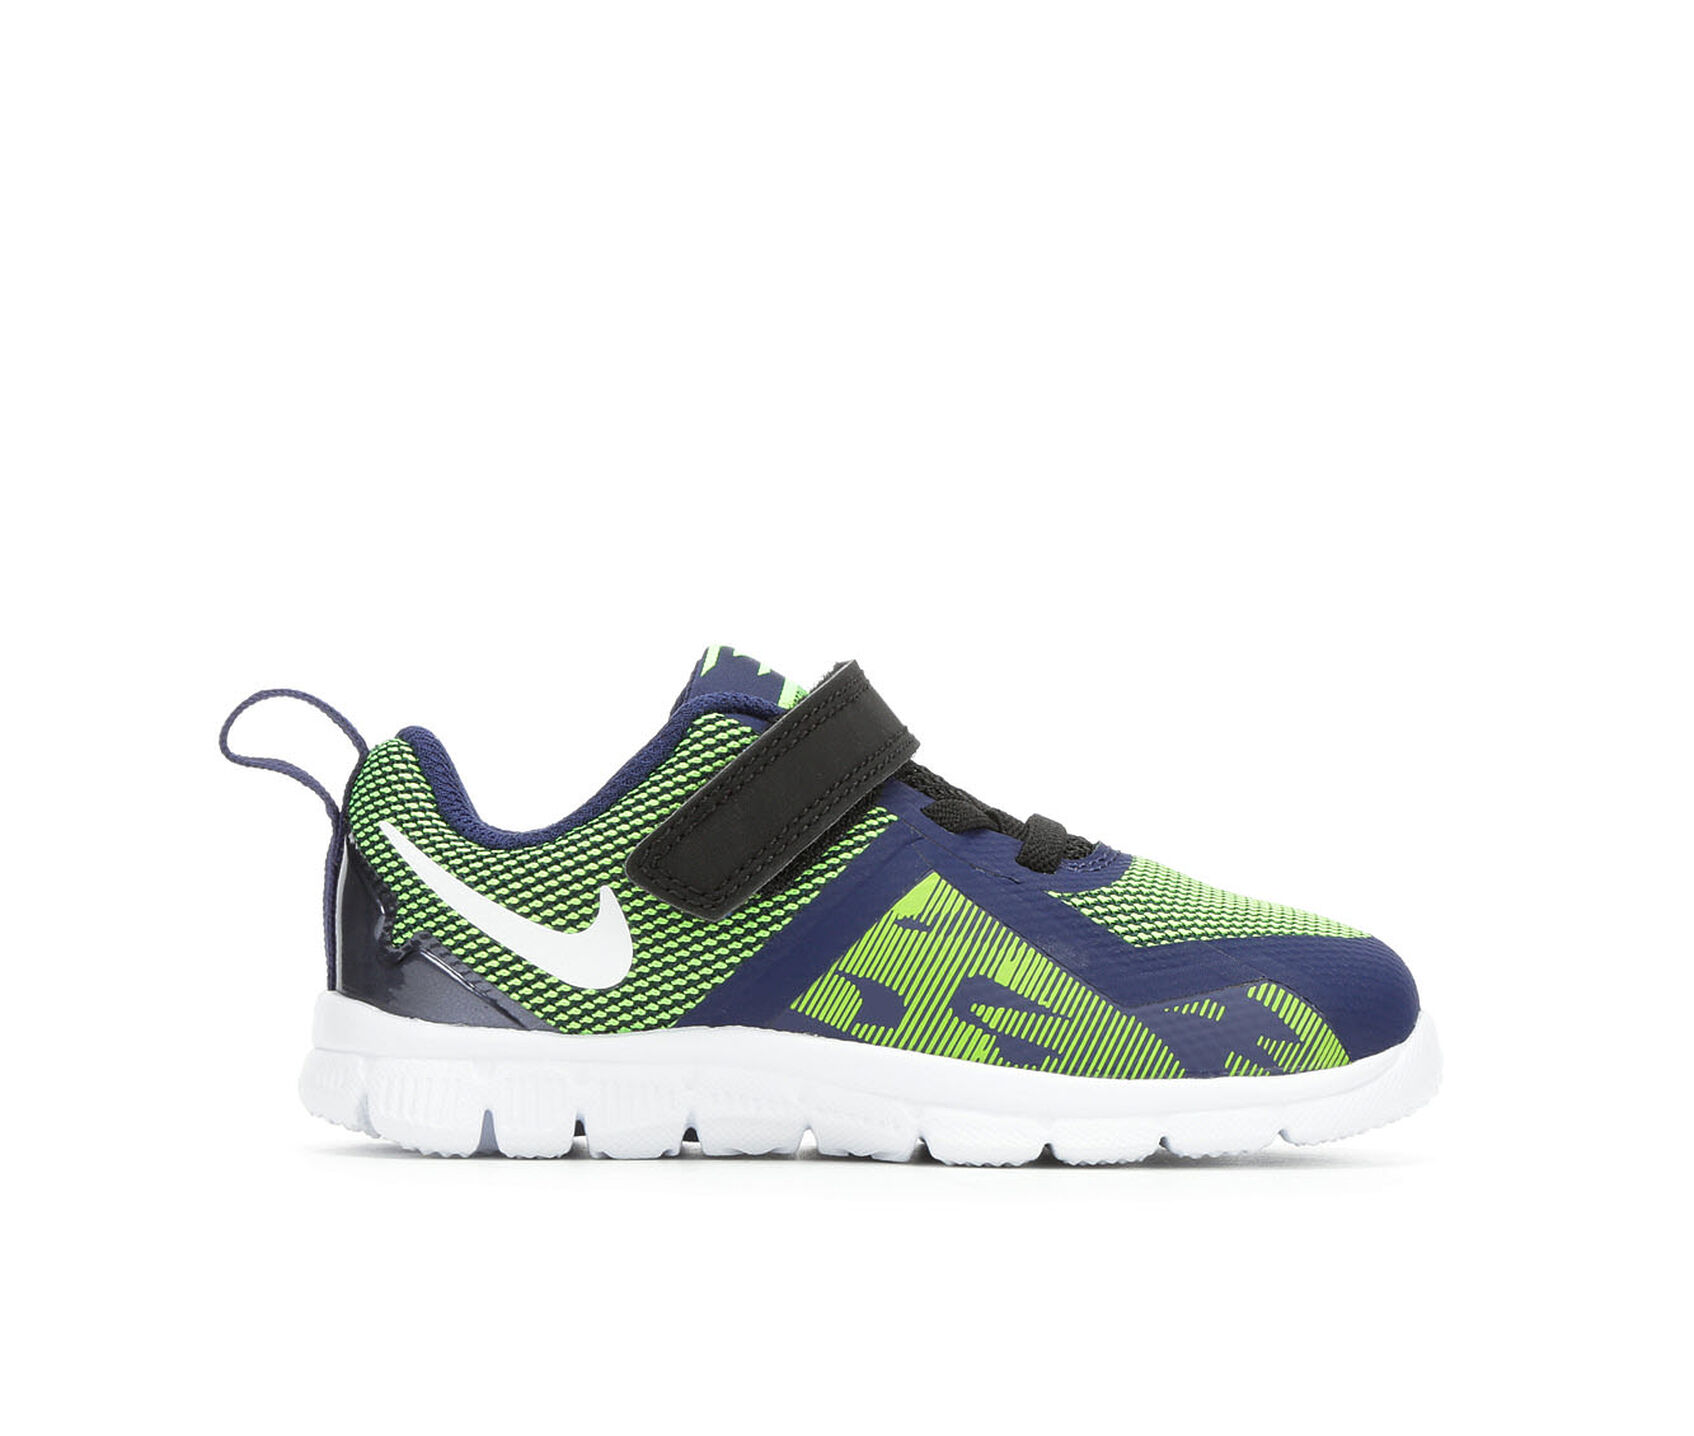 6d021705107a ... Nike Toddler Flex Contact Control II Athletic Shoes. Previous